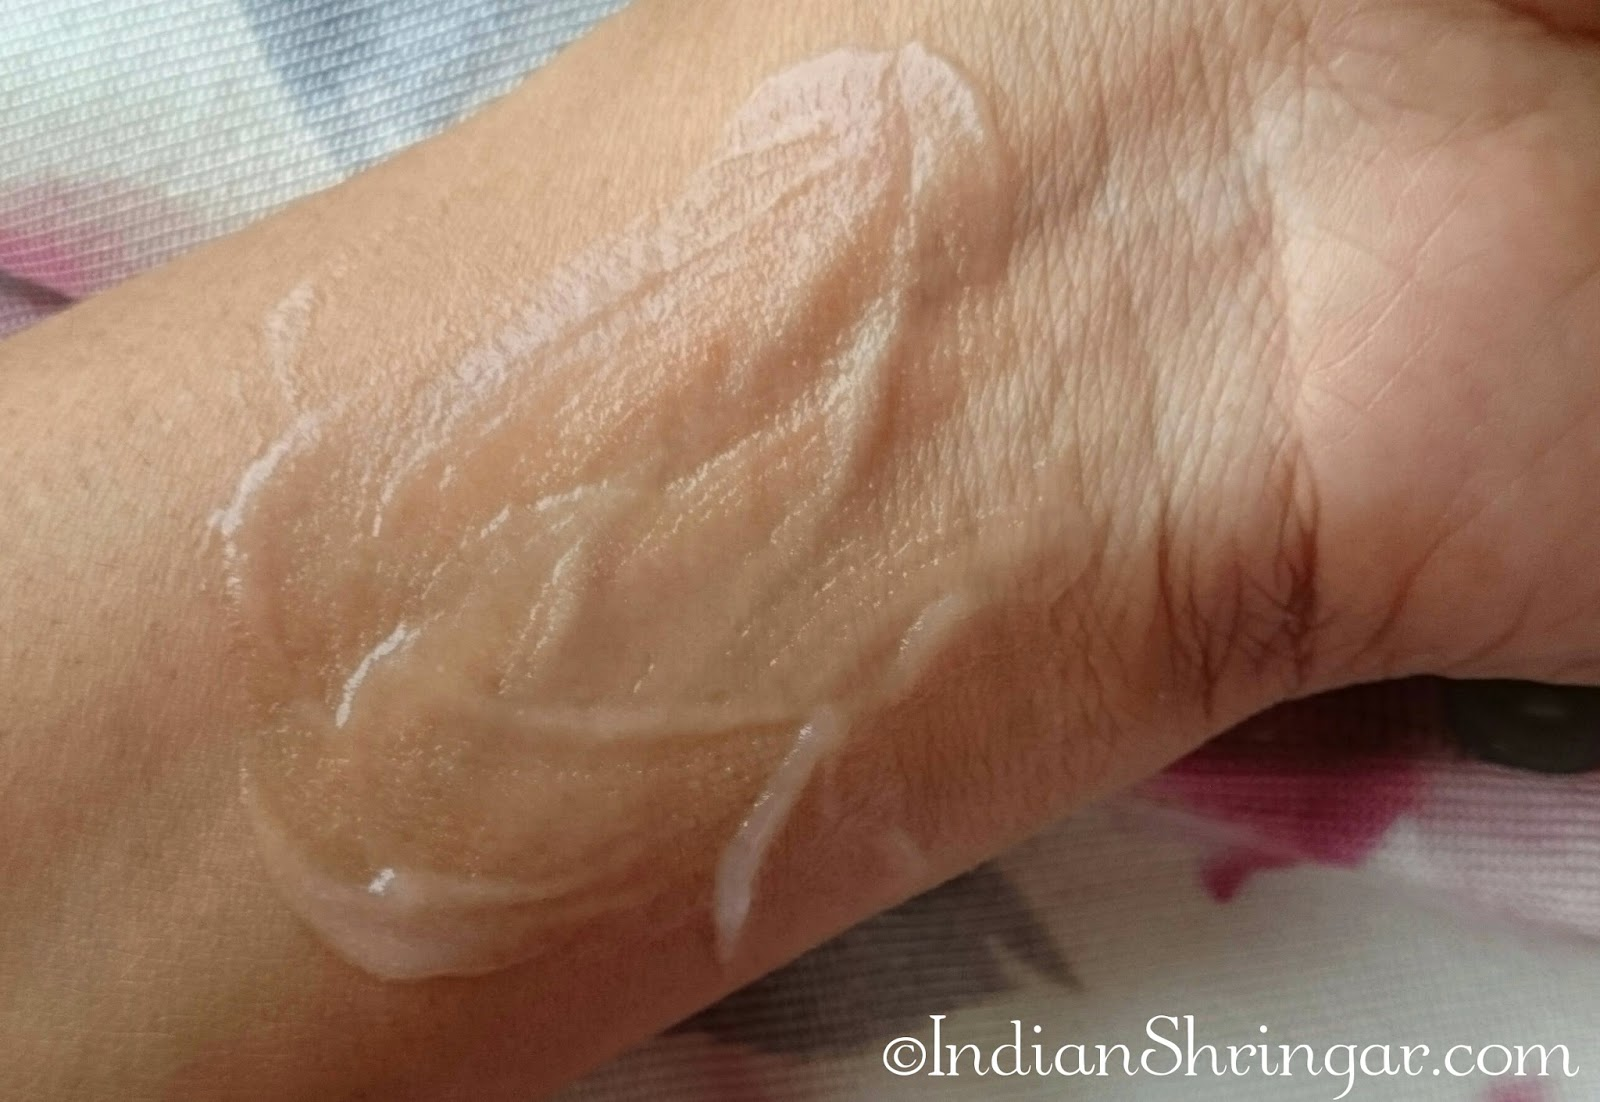 The Body Shop Vitamin E Aqua Boost Sorbet review and texture